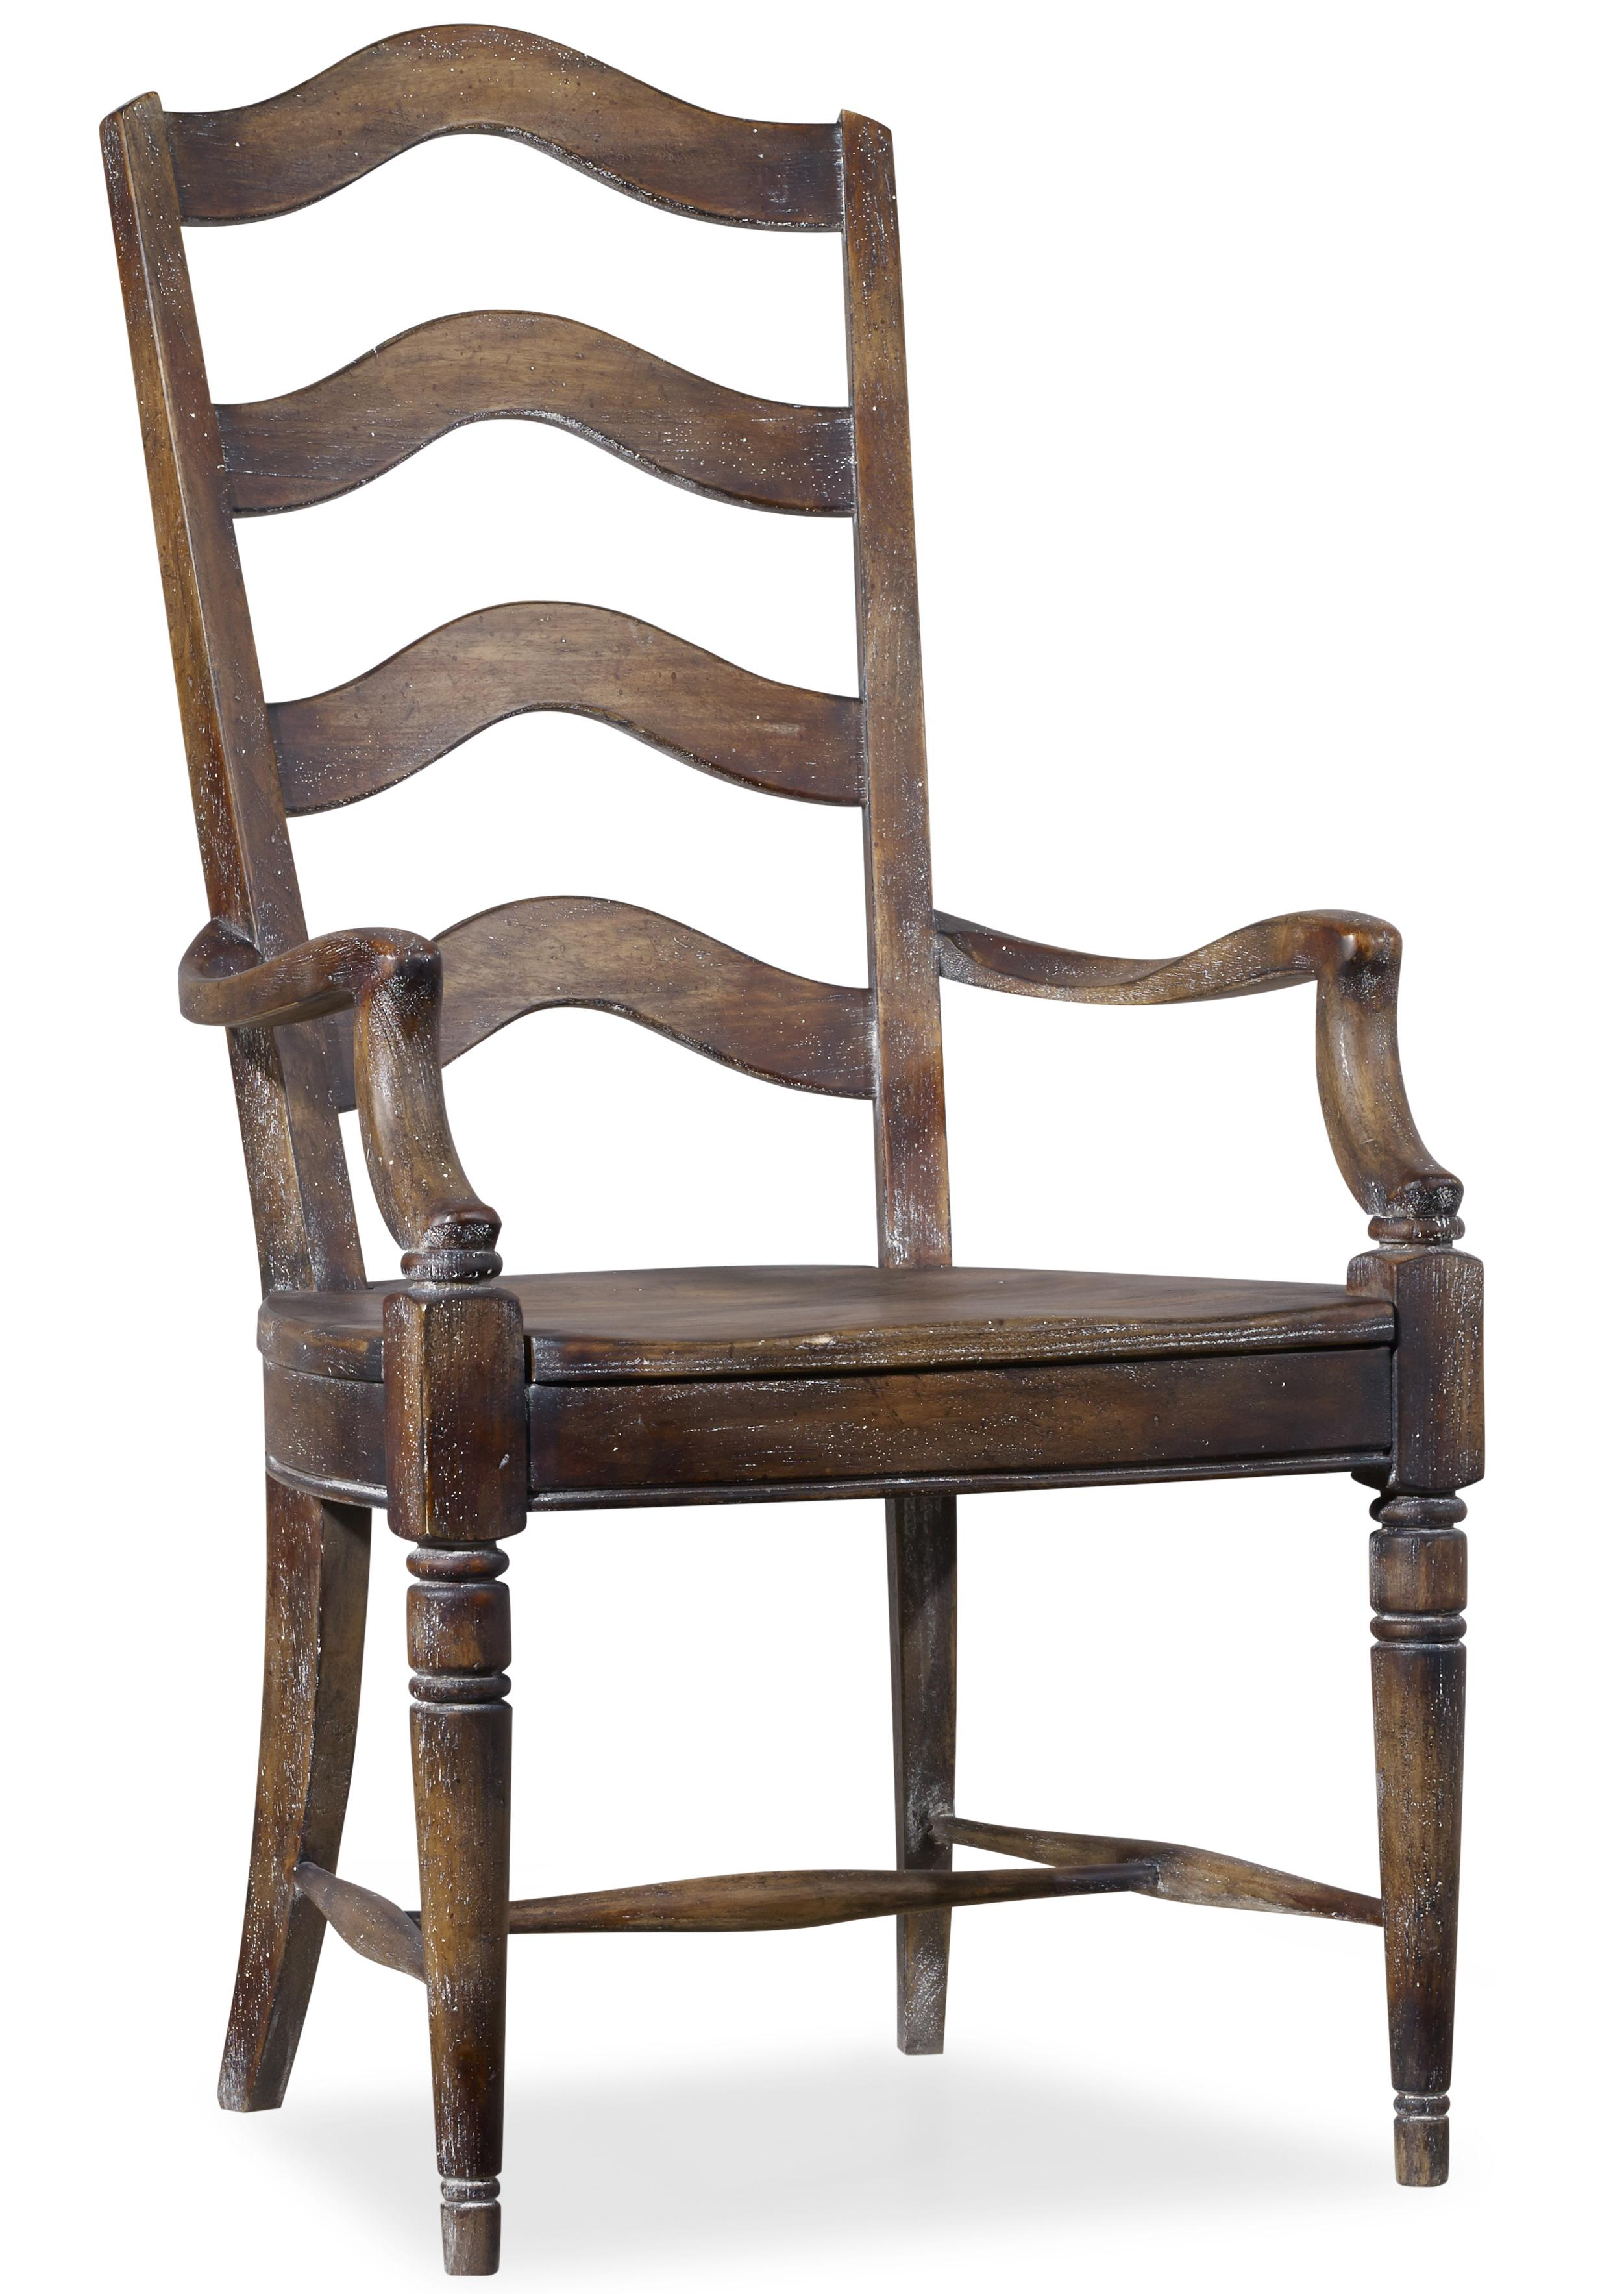 Hooker Furniture Willow Bend Ladderback Arm Chair - Item Number: 5343-75300